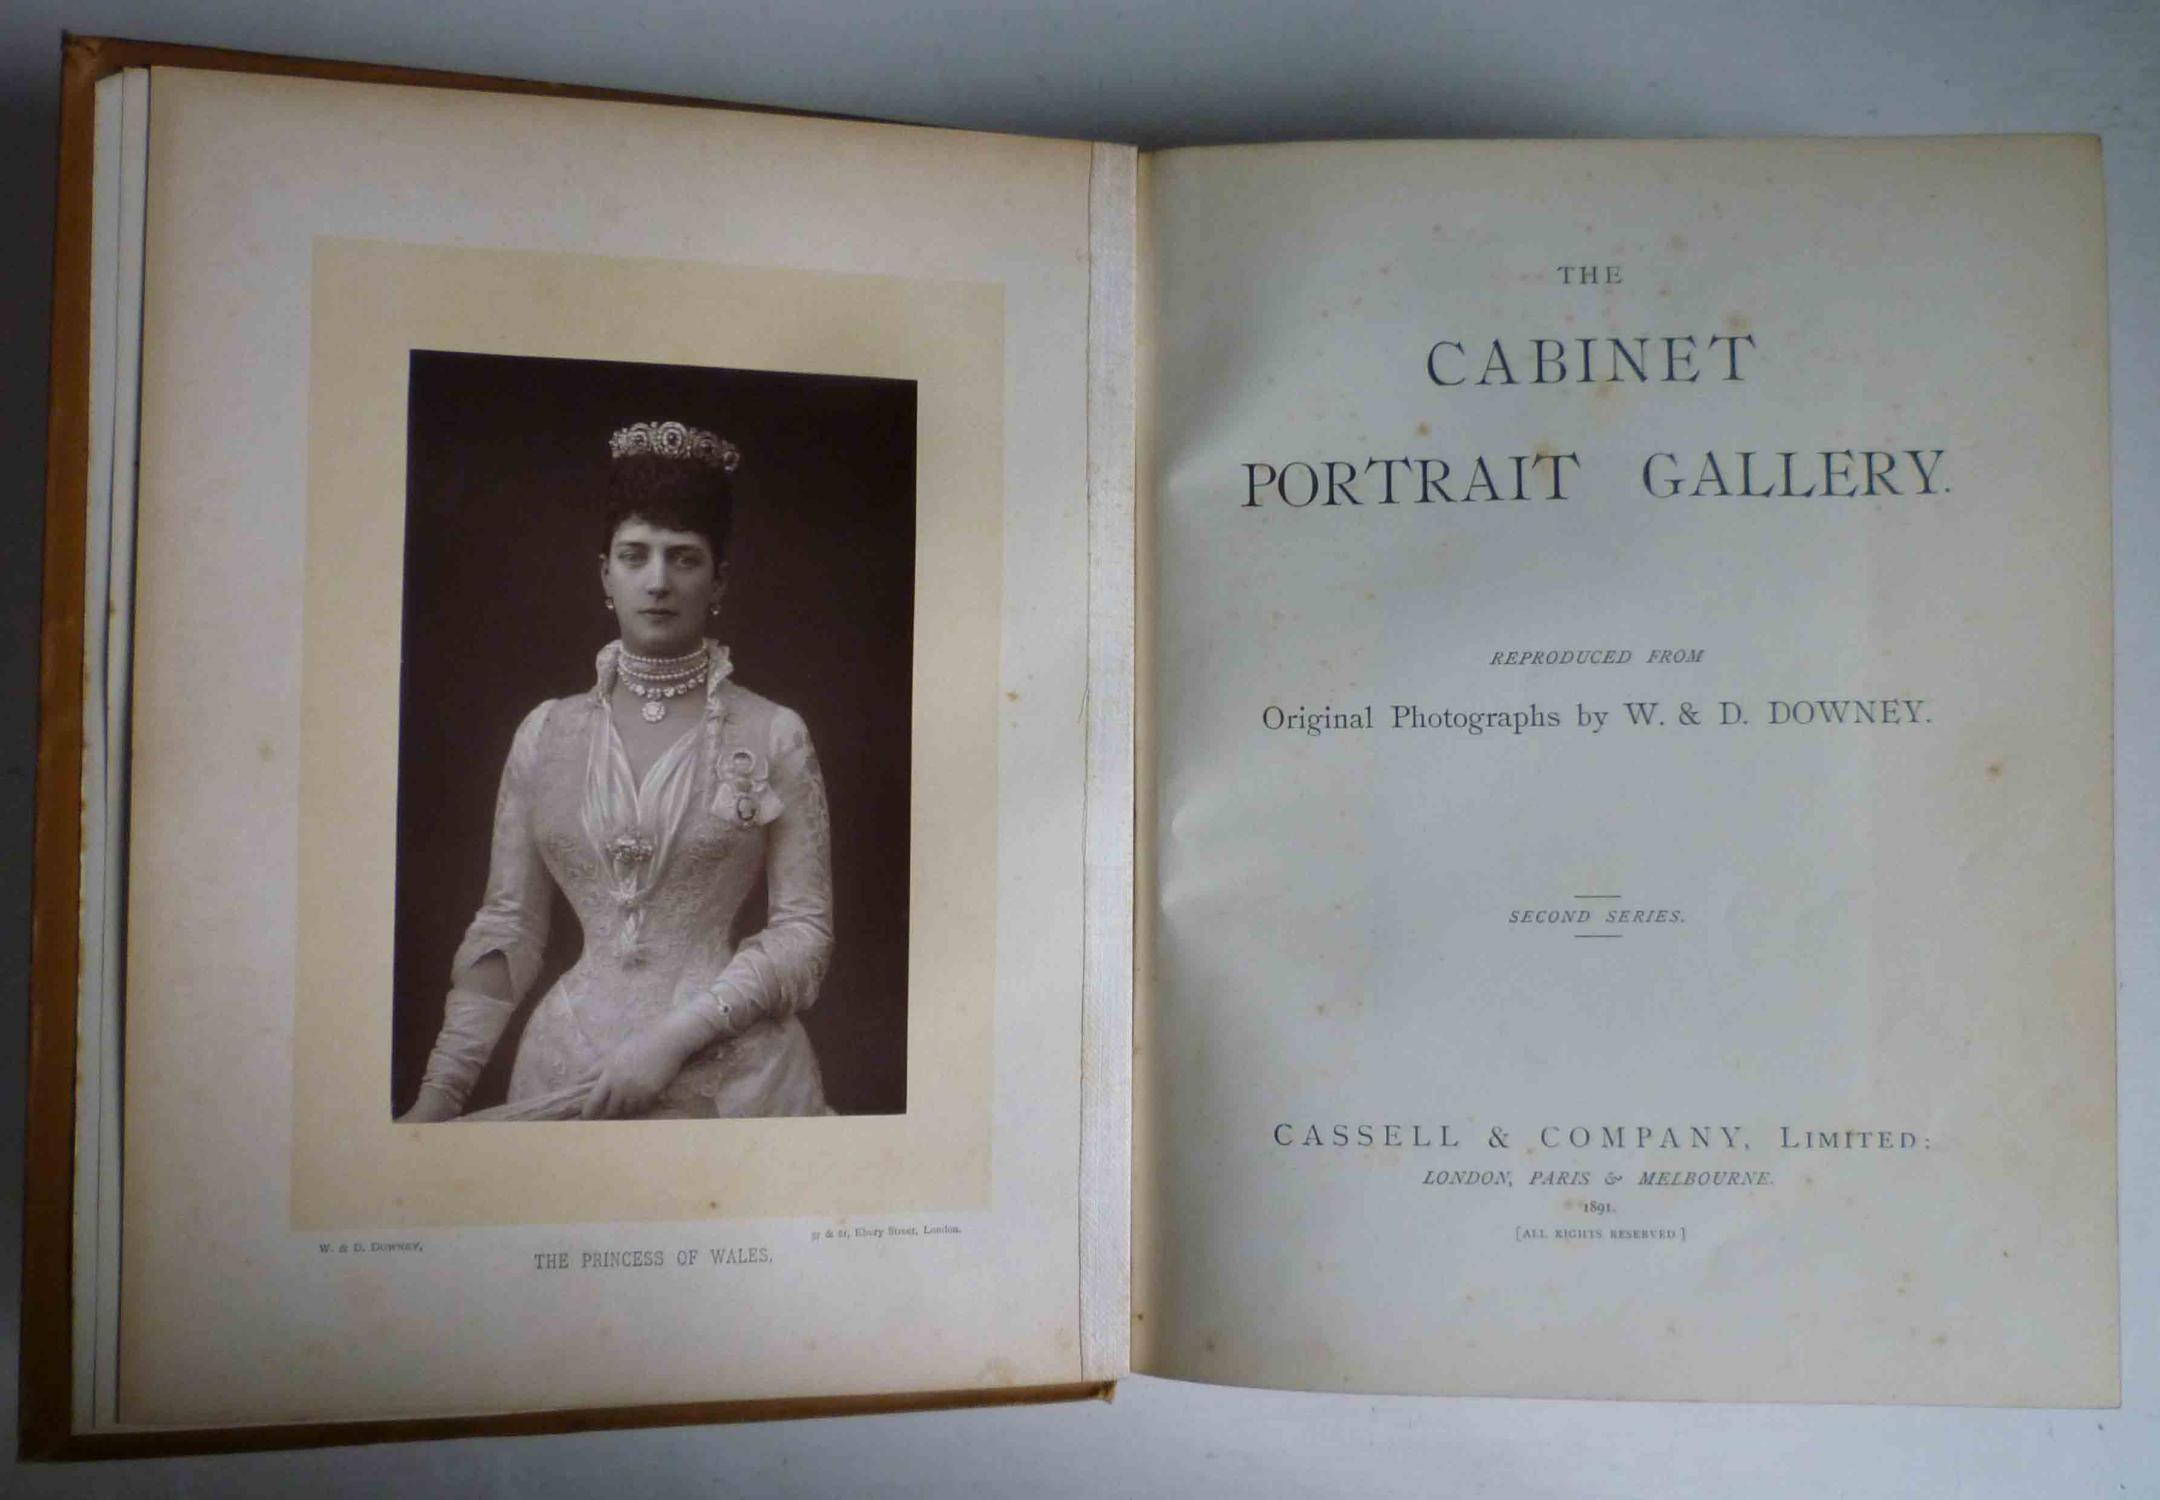 THE CABINET PORTRAIT GALLERY - Second Series: Downey, W. & D.